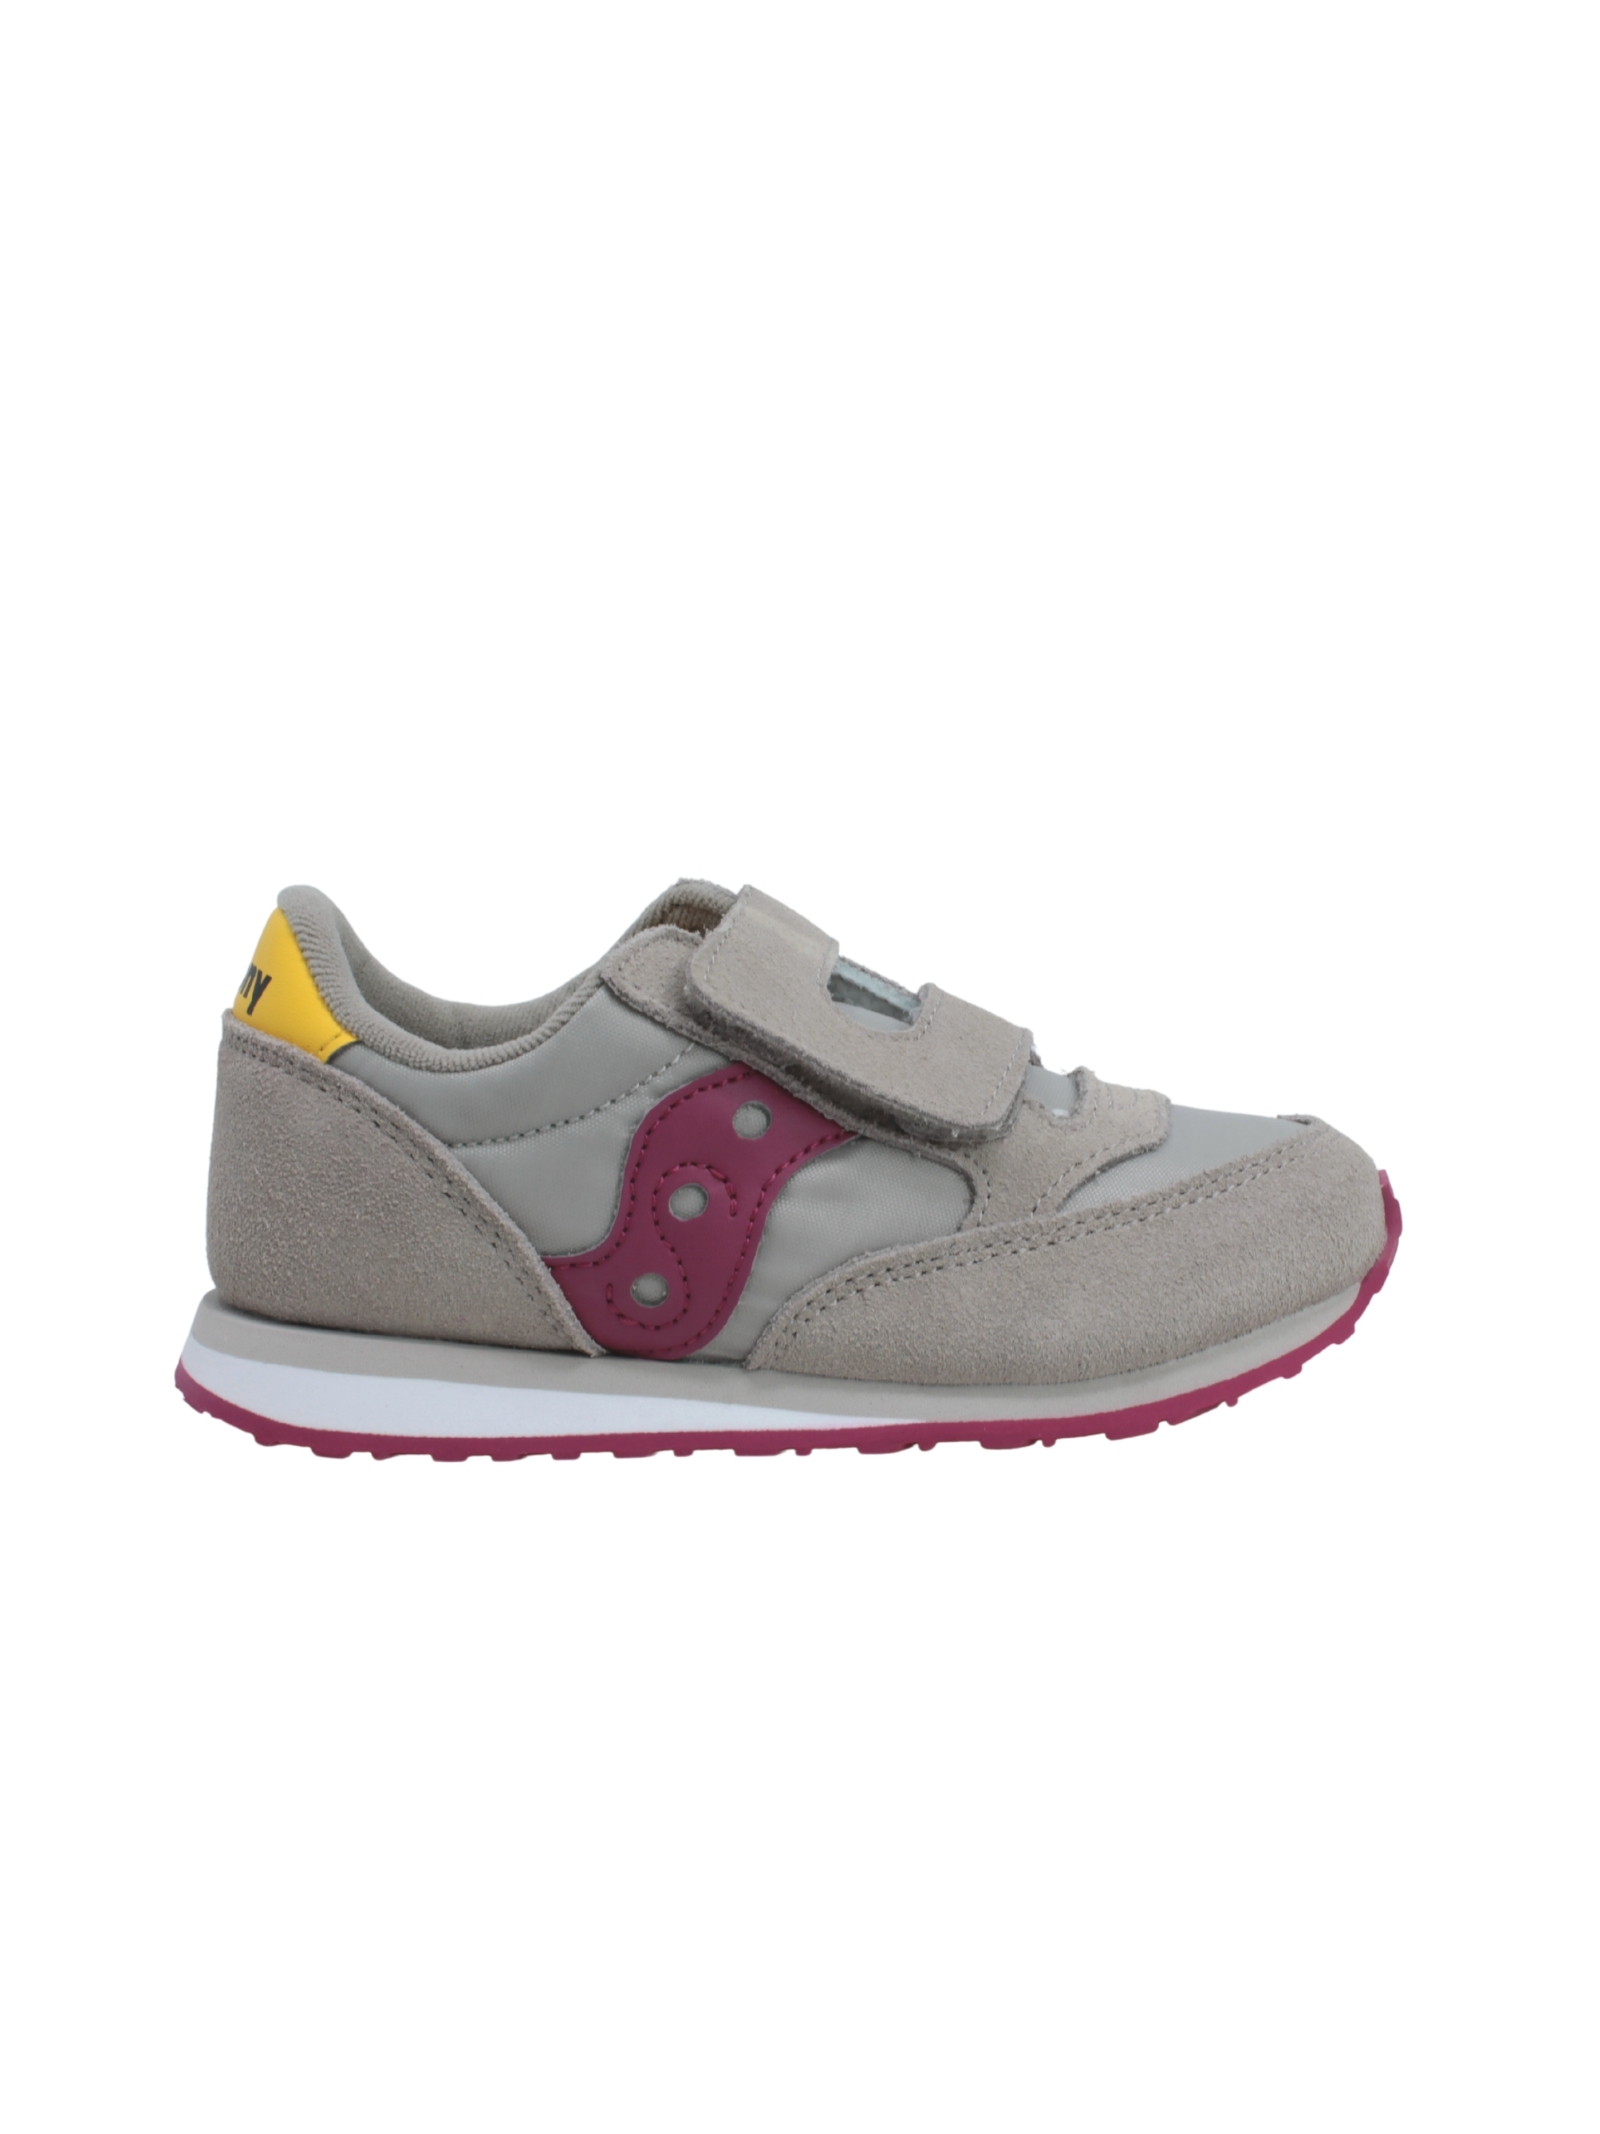 Sneakers Bambina Baby Jazz HL Taupe SAUCONY KIDS | Sneakers | SL164811PIETRA